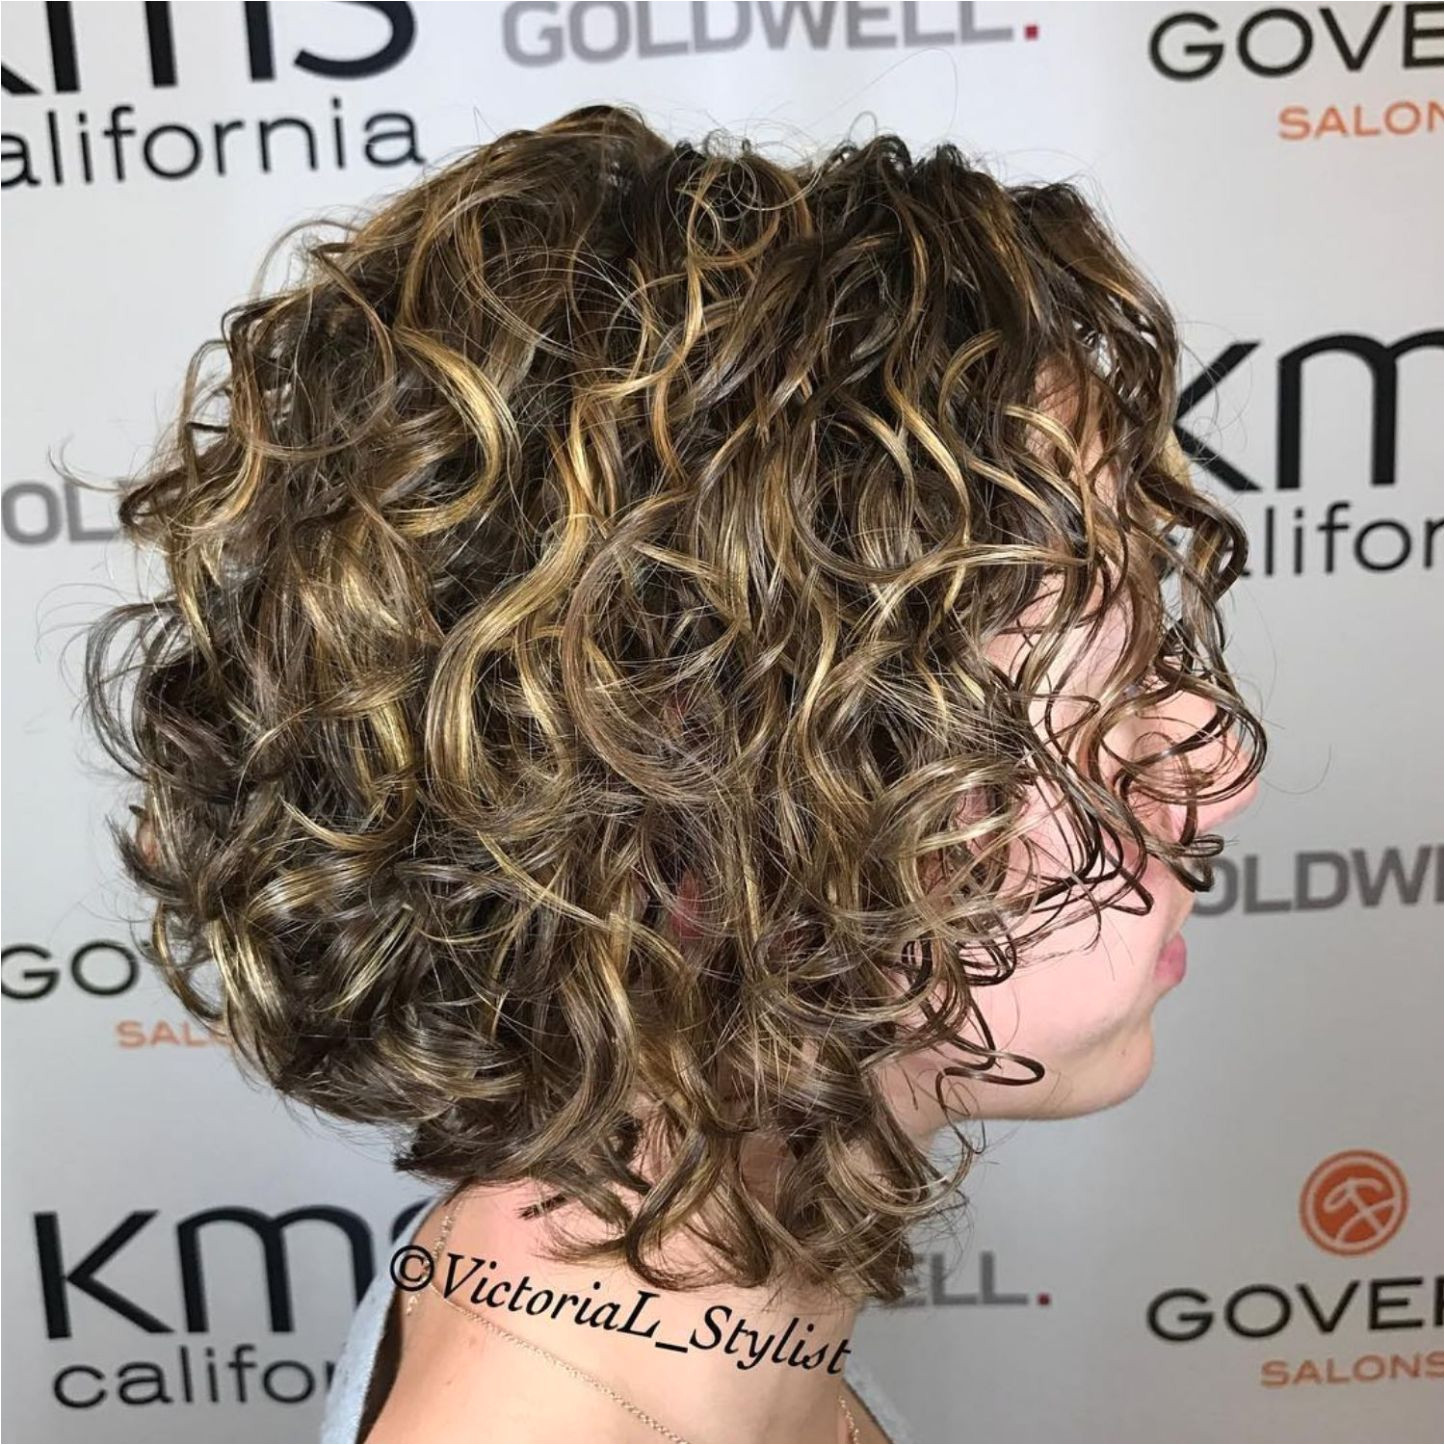 Curly Bob With Golden Blonde Highlights